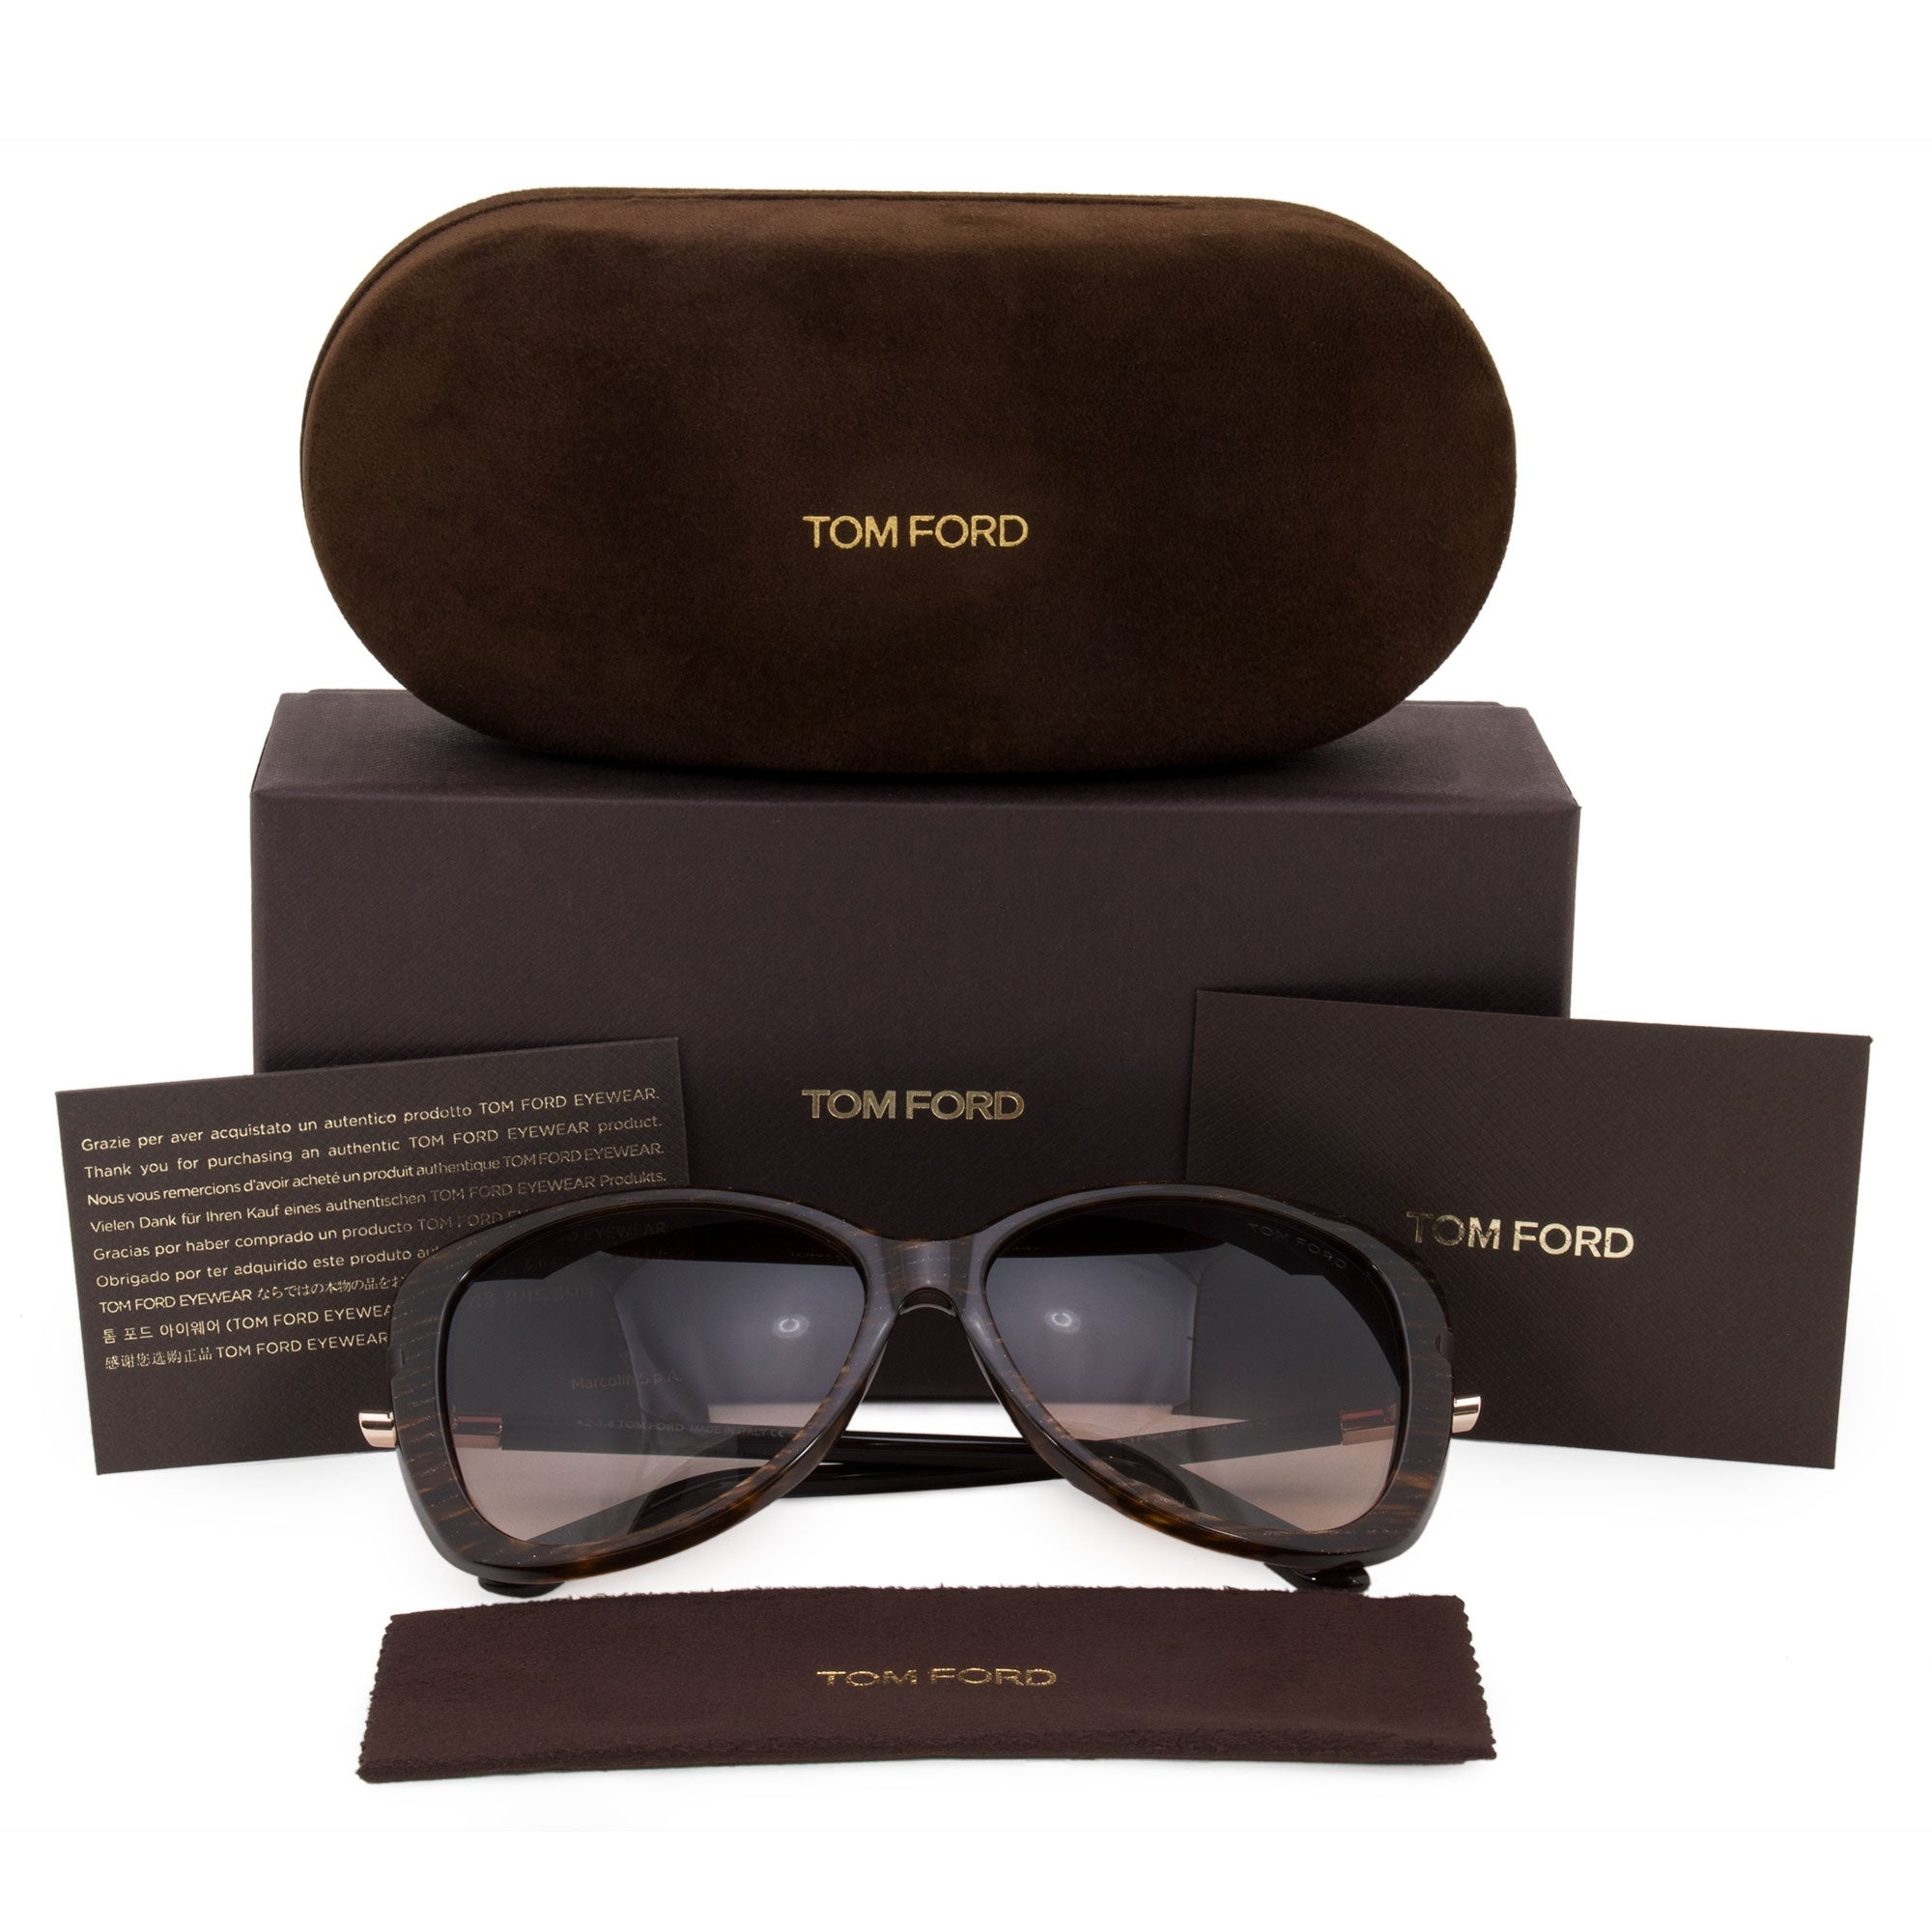 8d4a8a5cefcf Shop Tom Ford Linda Butterfly Sunglasses FT0324 50F 59 - Free Shipping  Today - Overstock - 23138955